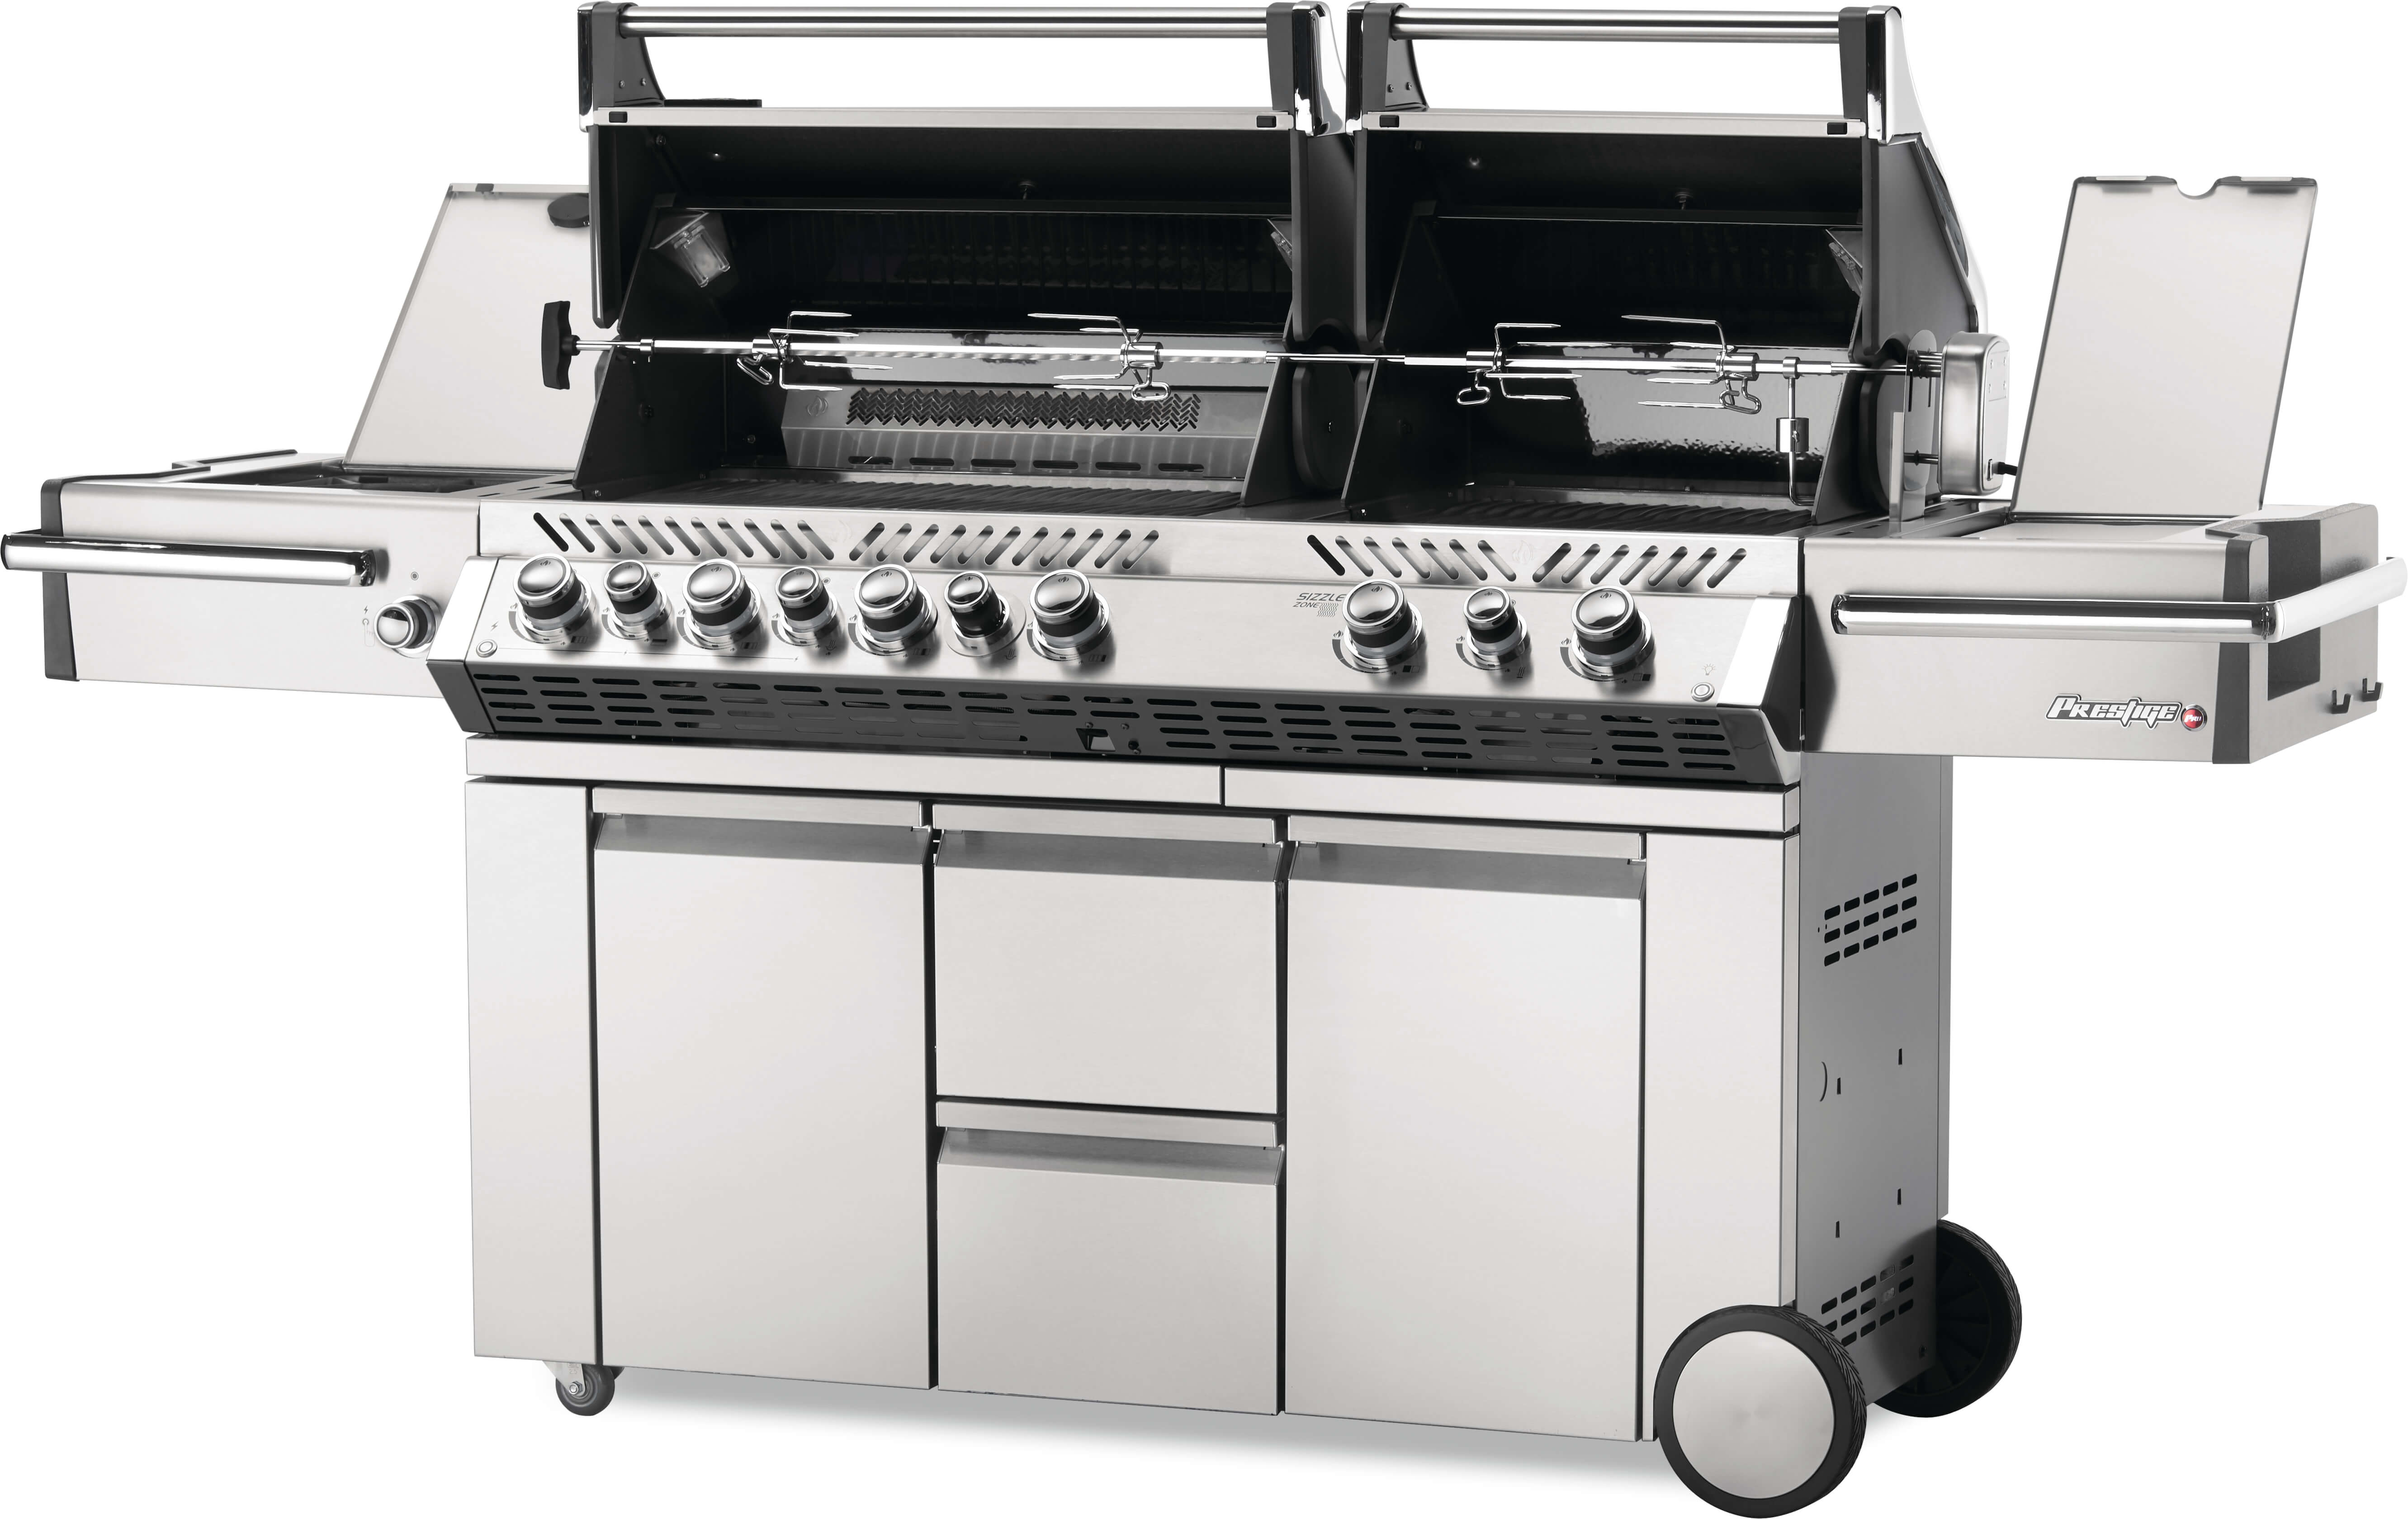 Prestige PRO™ 825 Propane Gas Grill with Power Side Burner and Infrared Rear & Bottom Burners, Stainless Steel